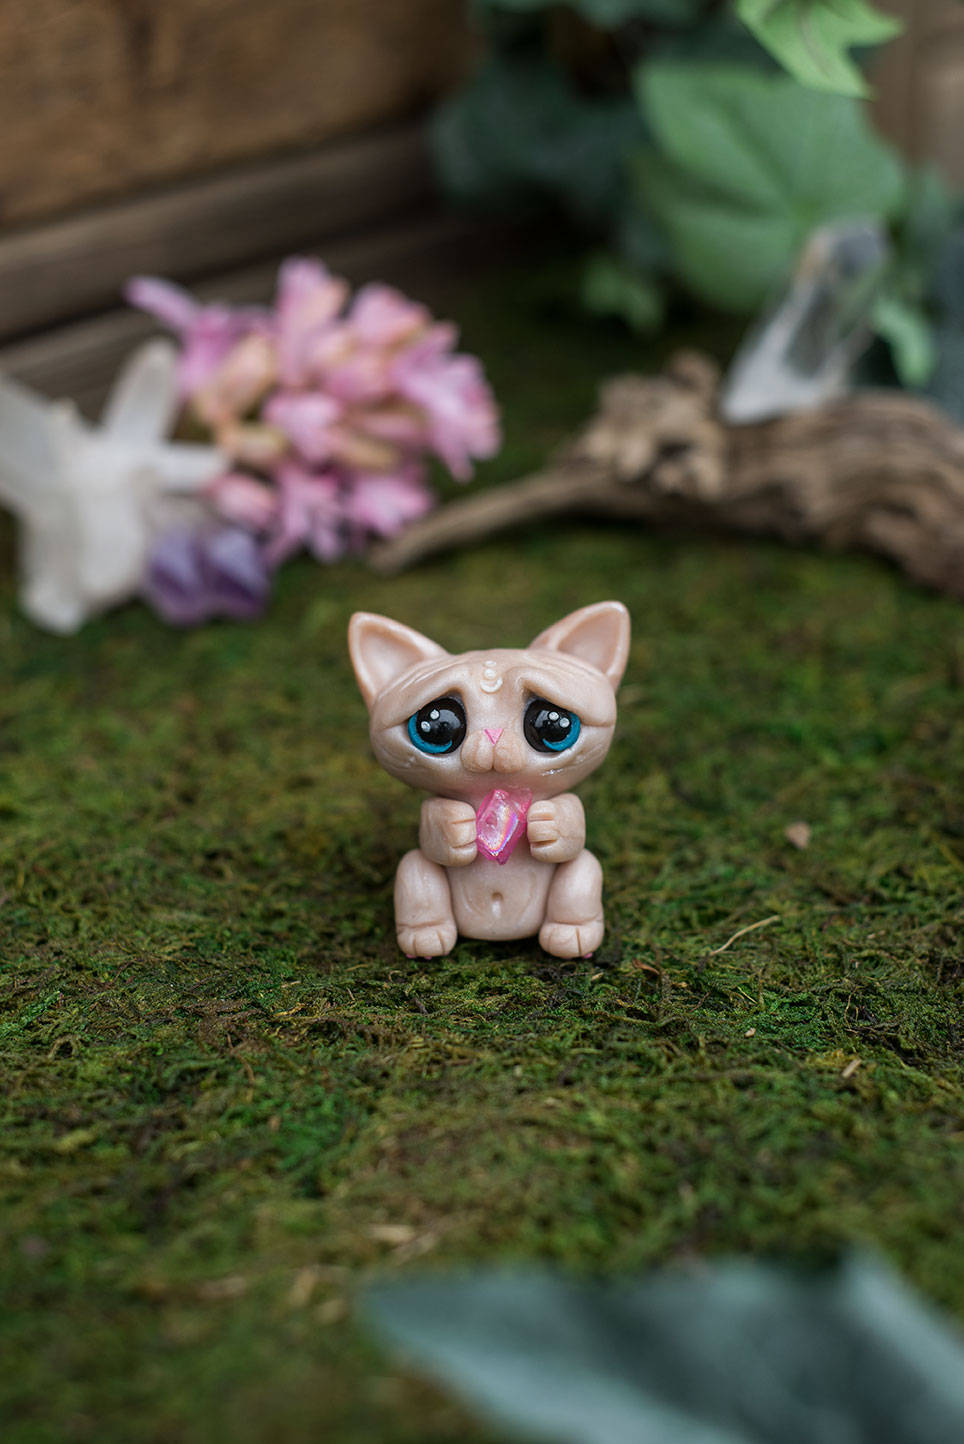 SALE!!! Hairless Cat Mish - OOAK collectible handmade polymer clay art toy gift